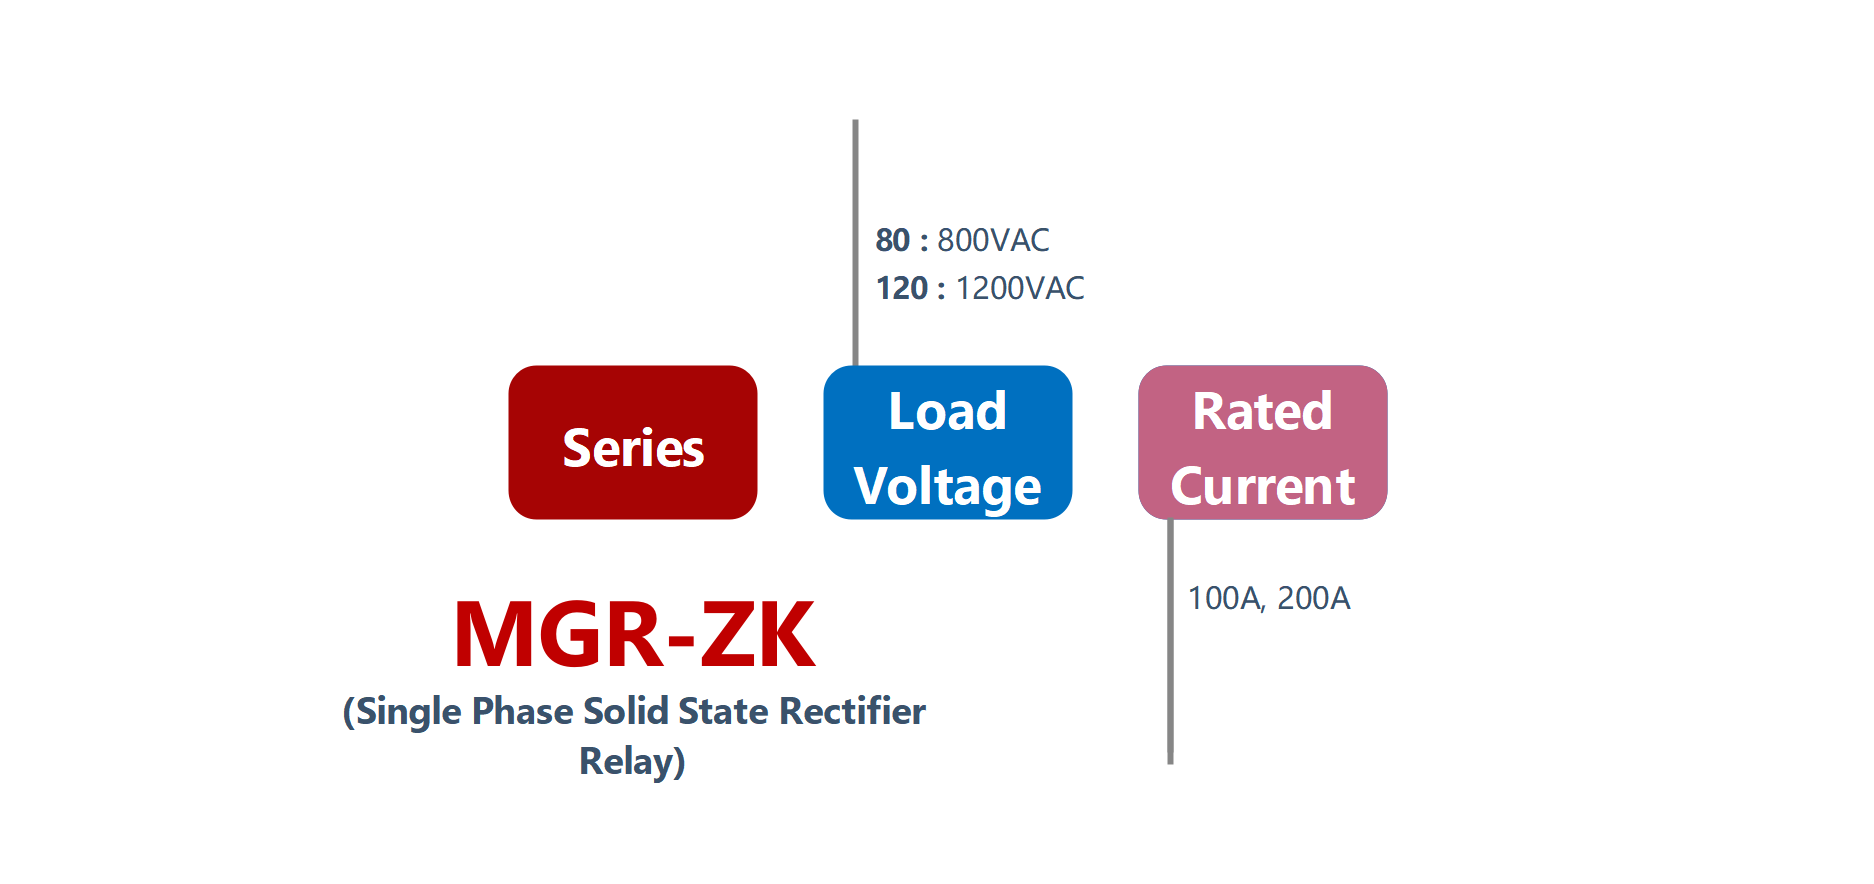 How to order MGR-ZK Series Solid State Rectifier